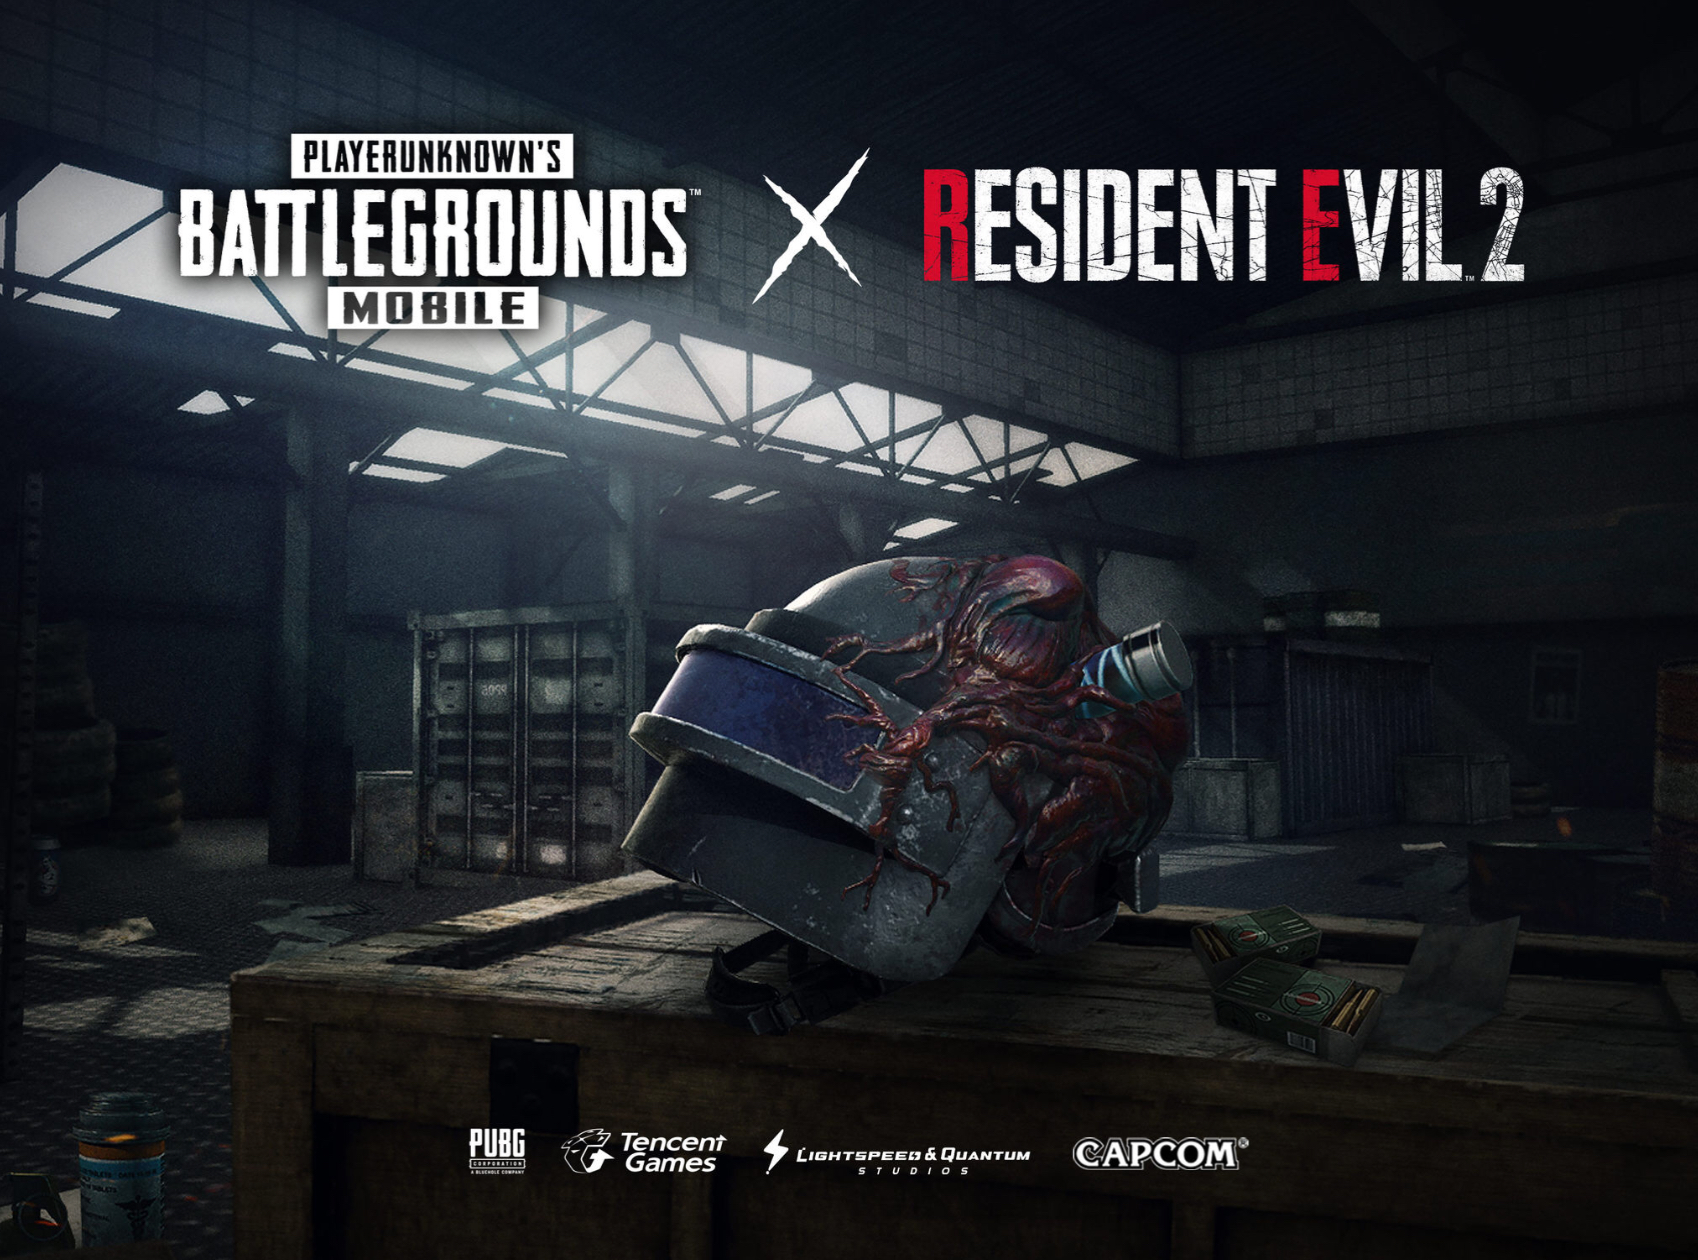 Pubg Resident Evil Wallpaper: 'PUBG Mobile's 'Resident Evil 2' Collaboration Is Finally